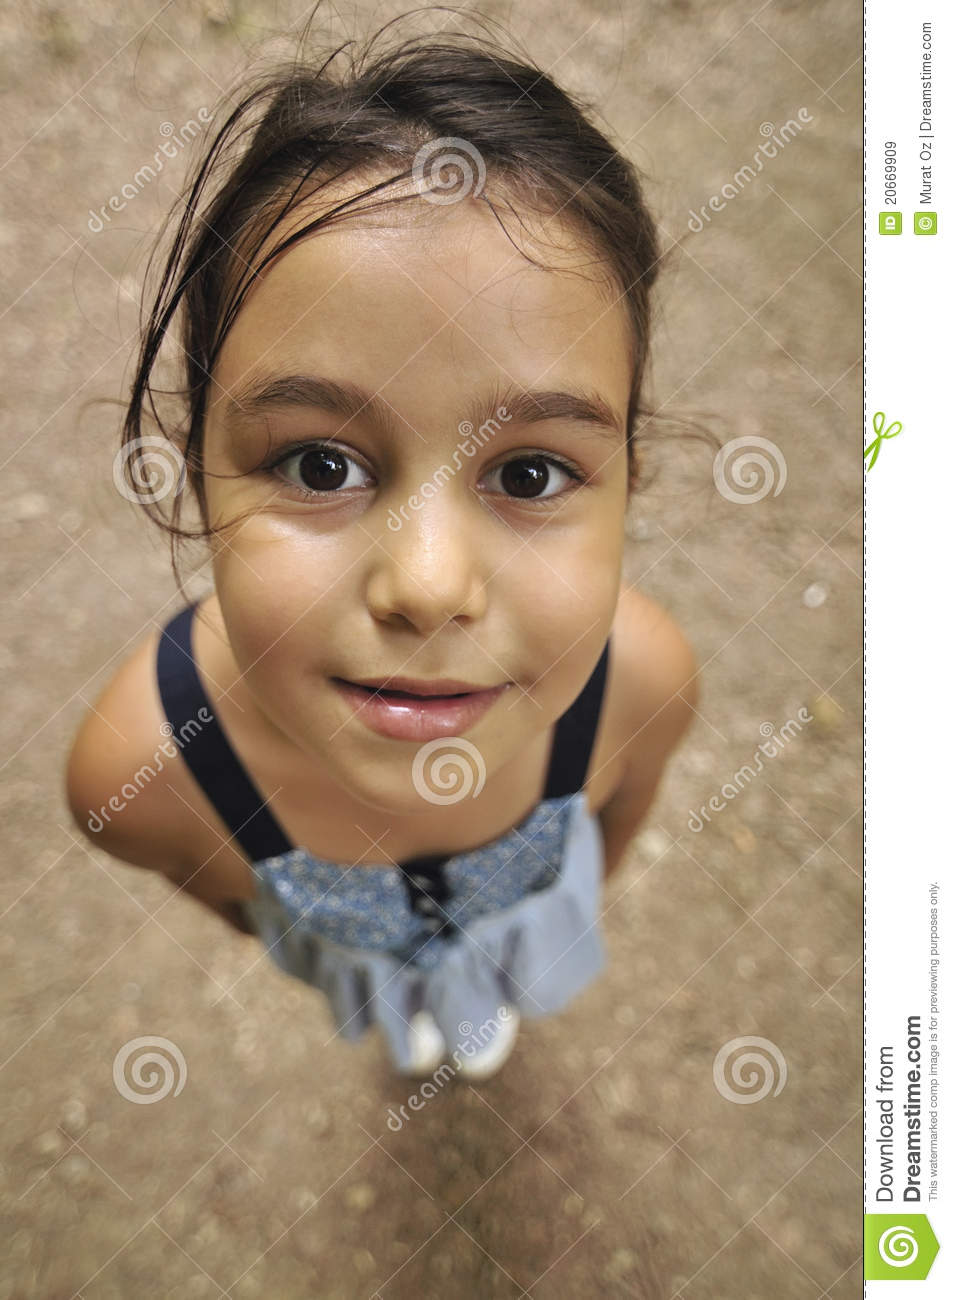 Cheerful Child (Perspective)